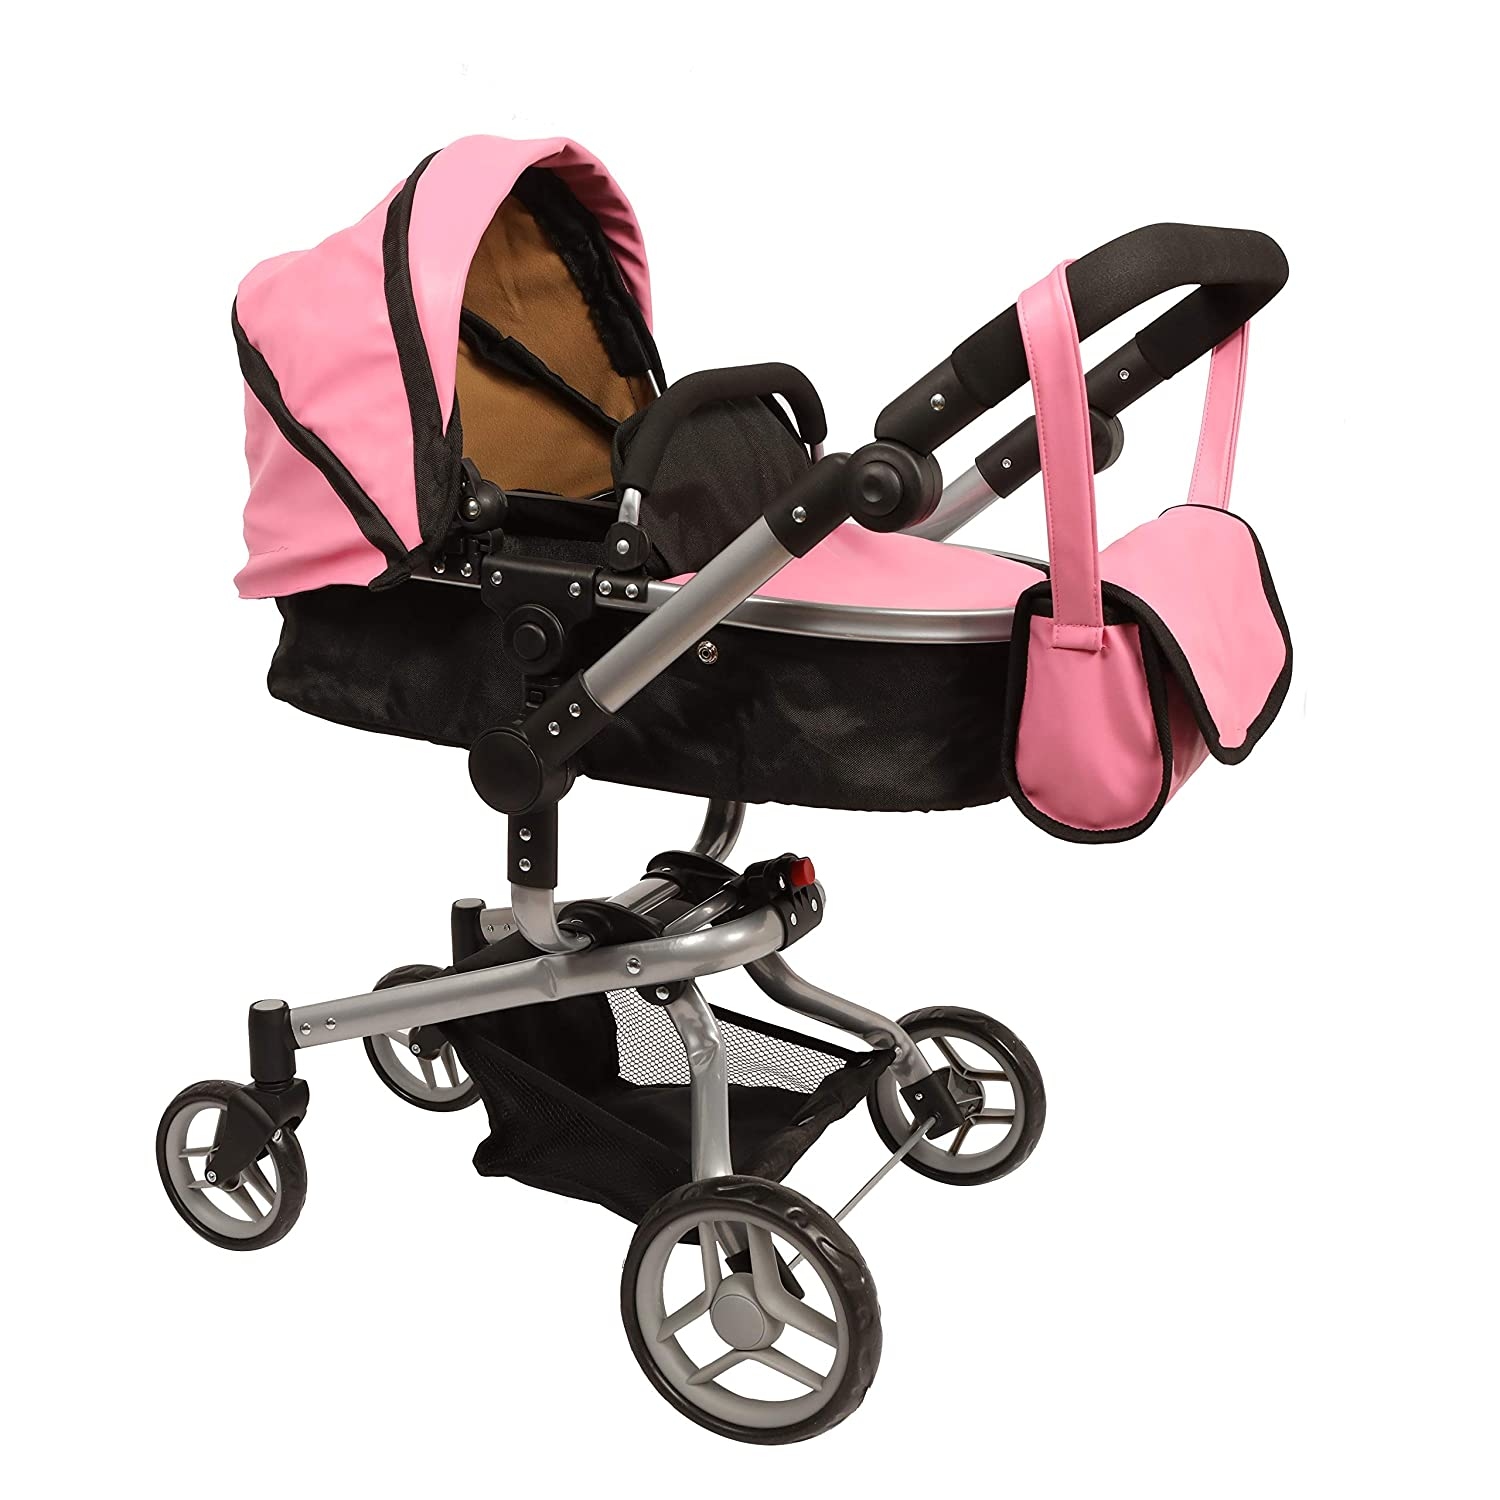 Mommy & me 2 in 1 Deluxe Leather doll stroller EXTRA TALL 32'' HIGH